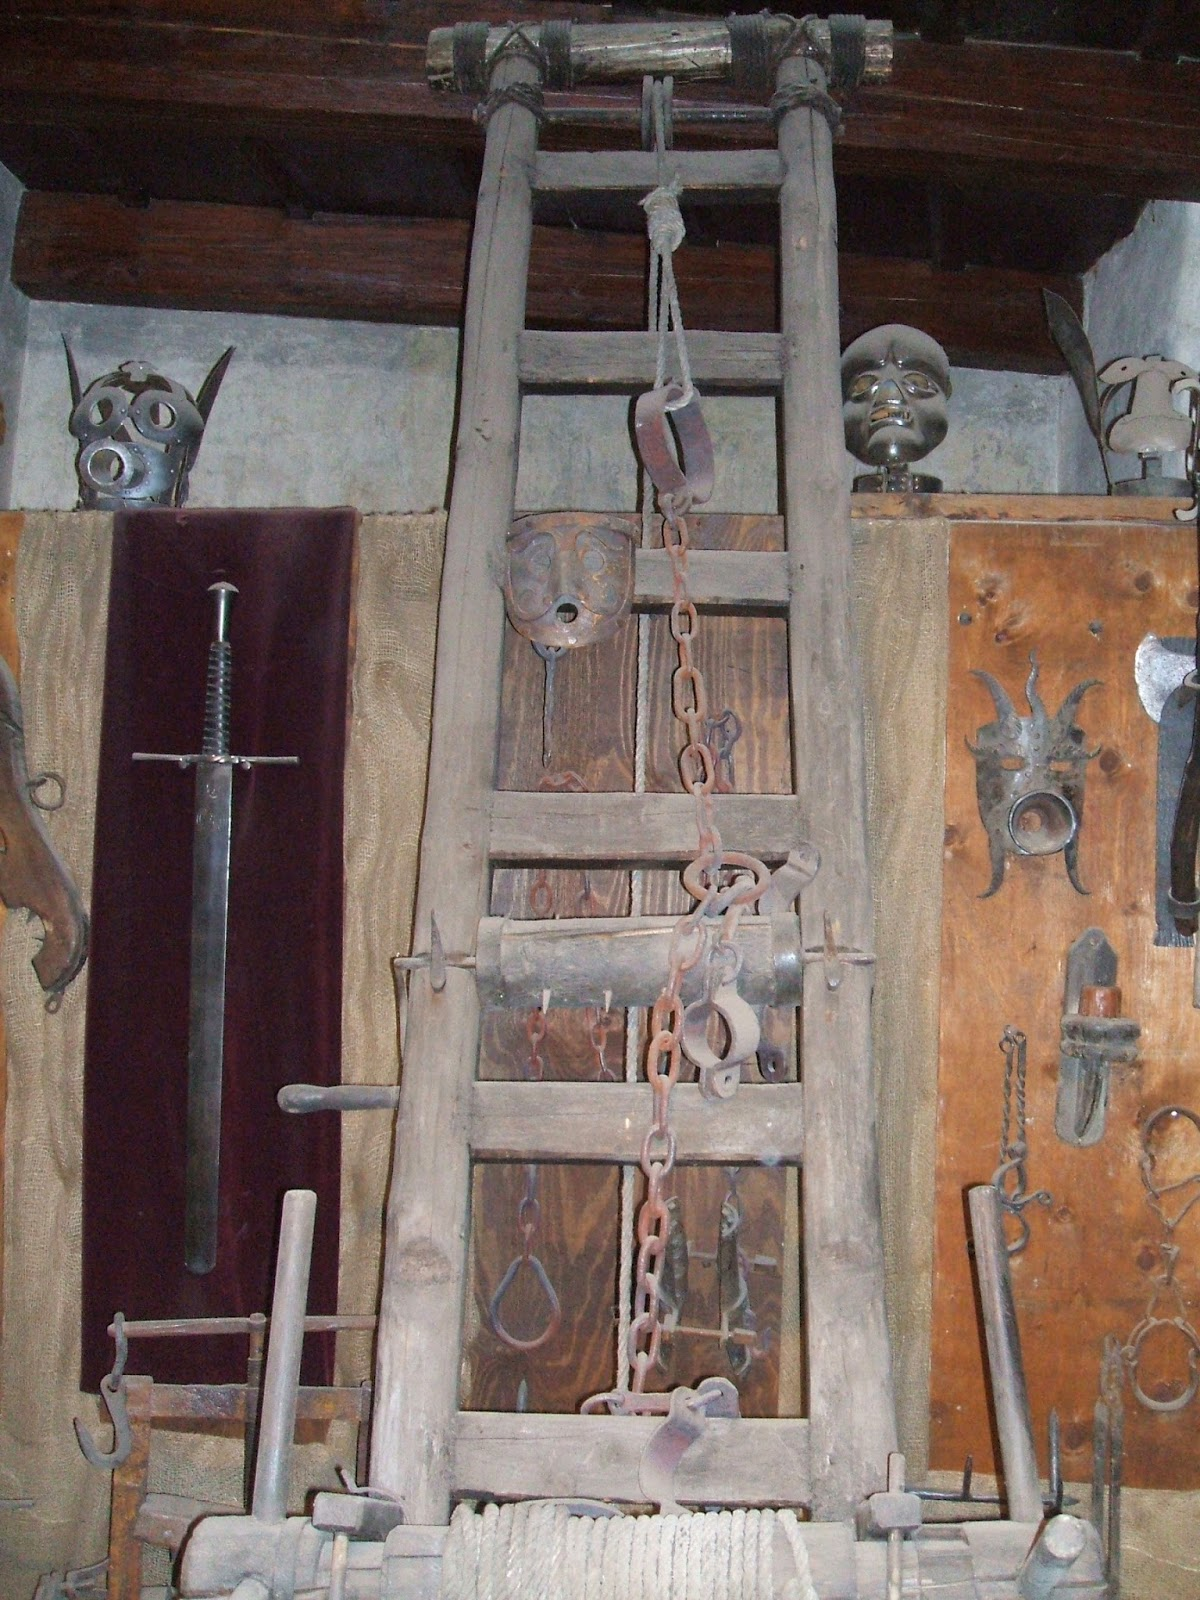 Joniandscottinprague Scott S Medieval Torture Chamber Photos